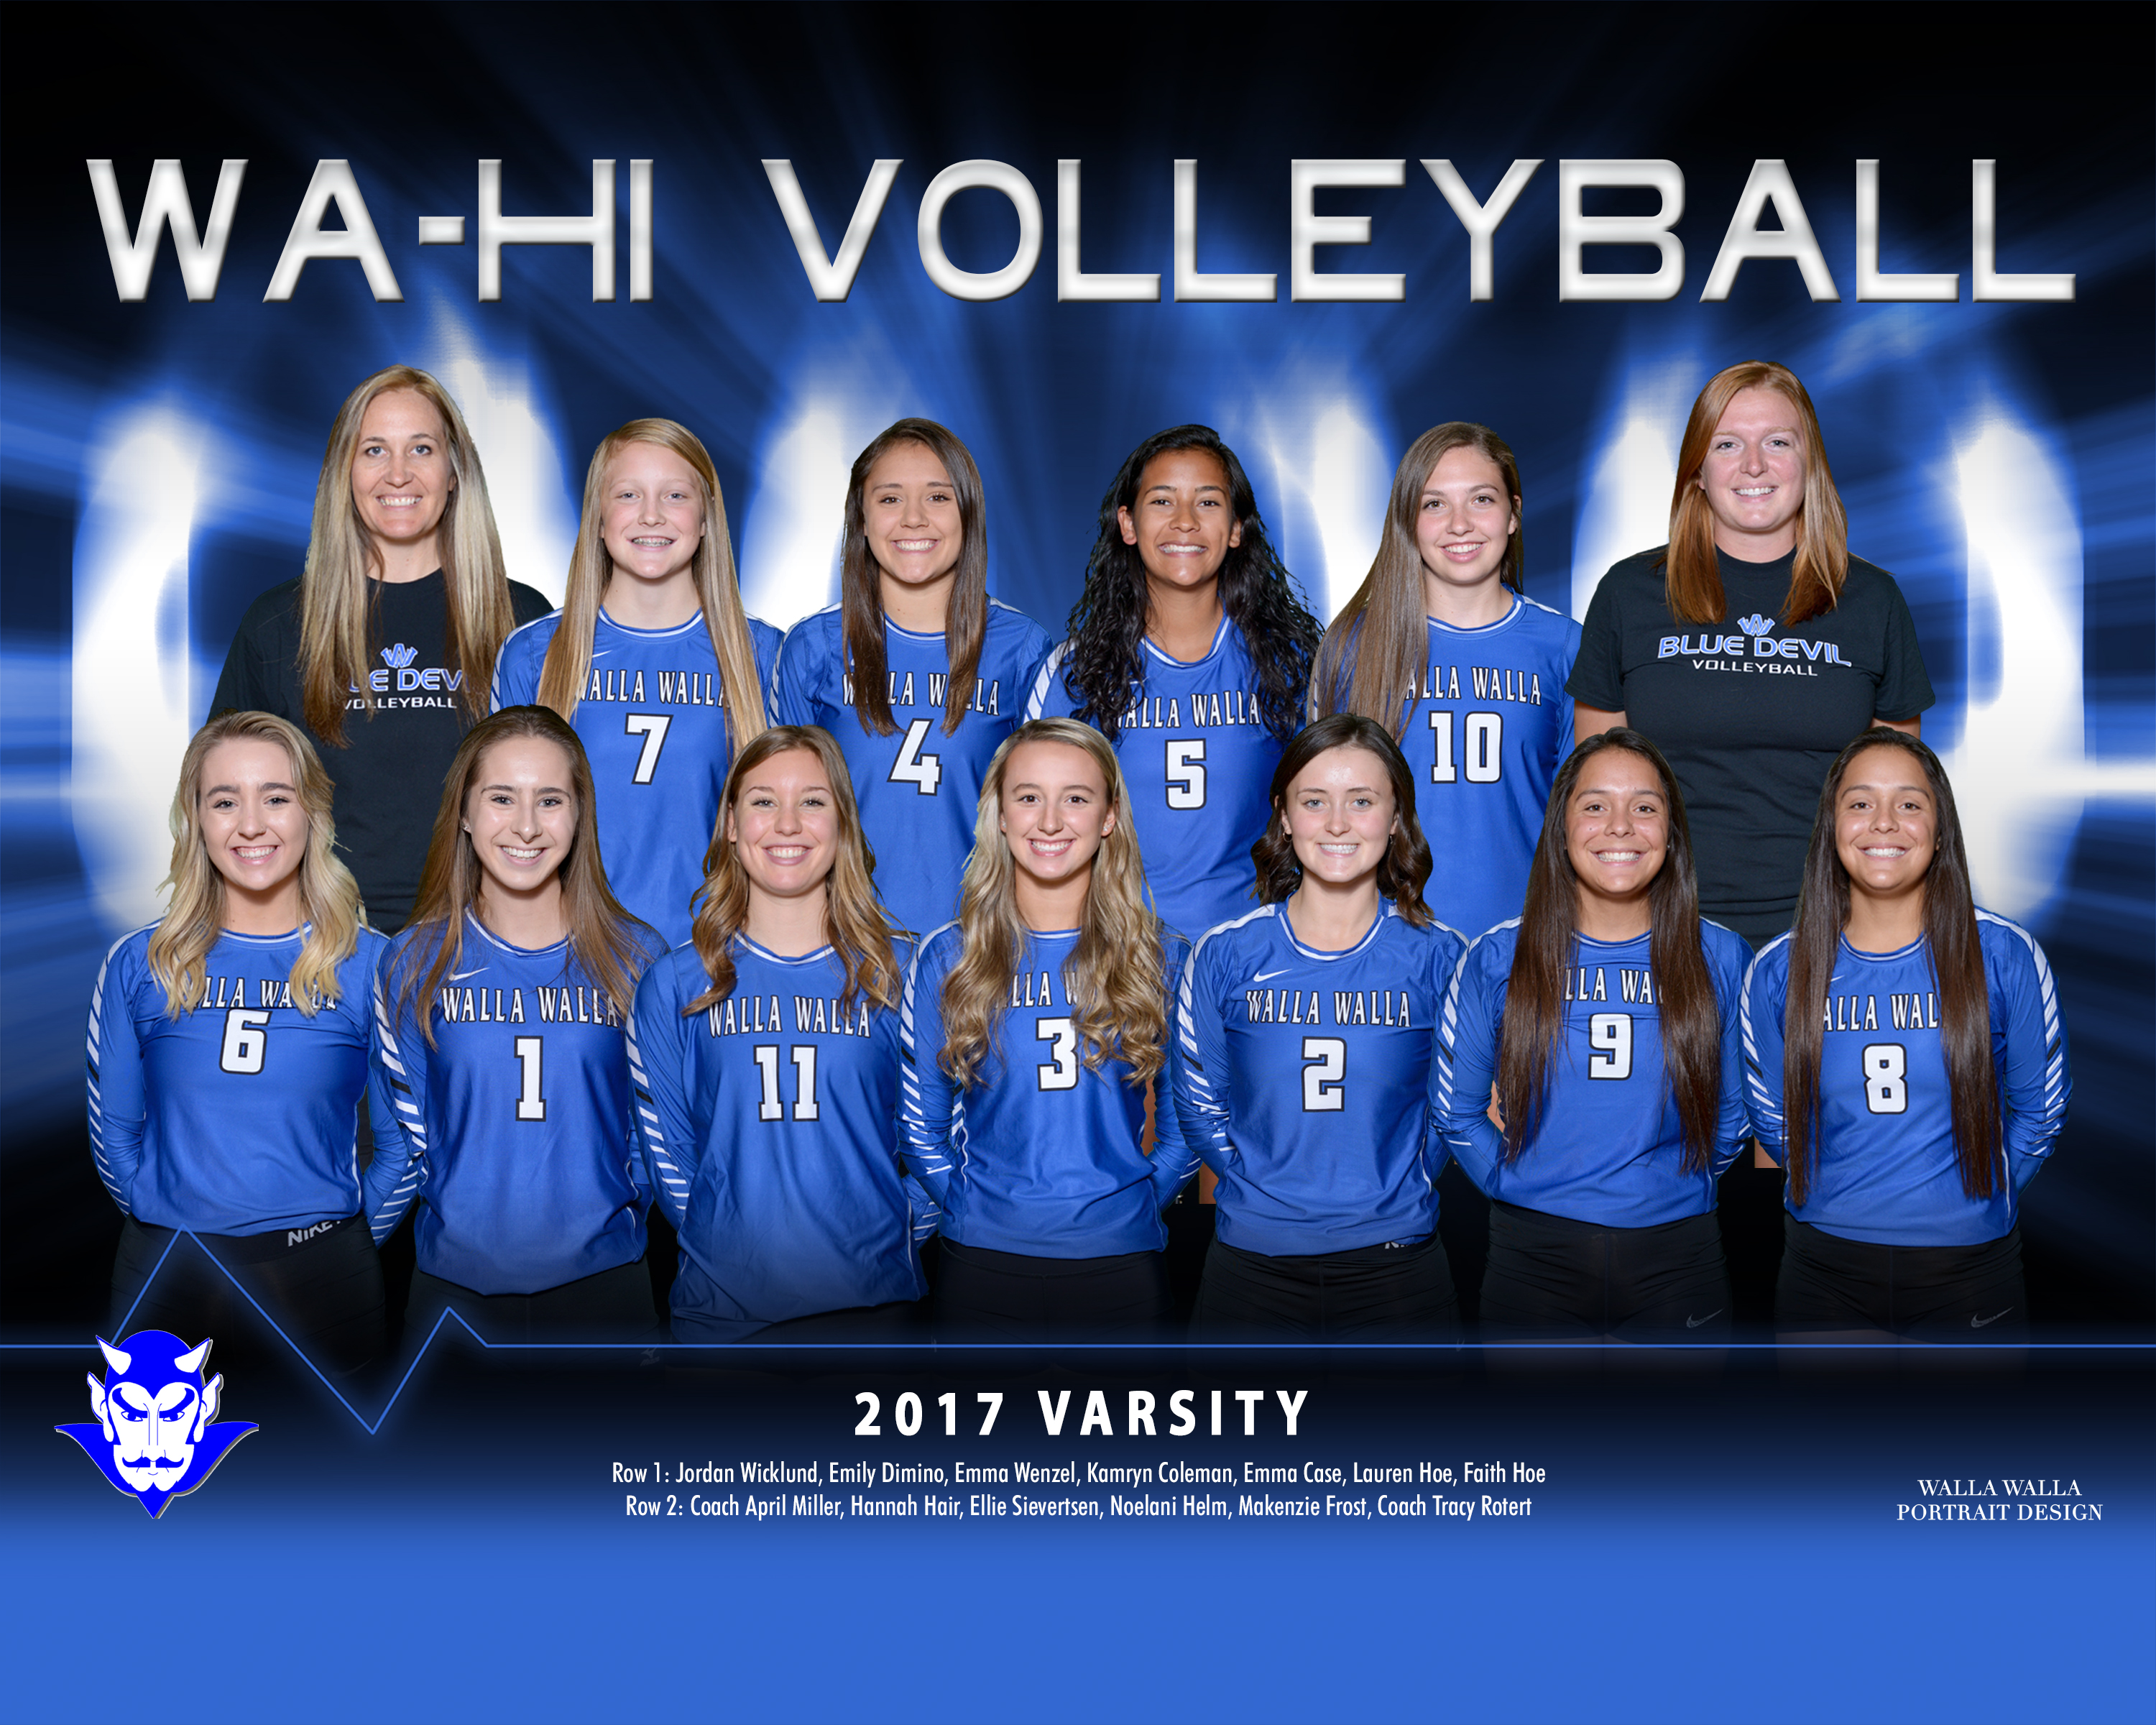 images/athletics/Volleyball/2017_Varsity_Volleyball.jpg